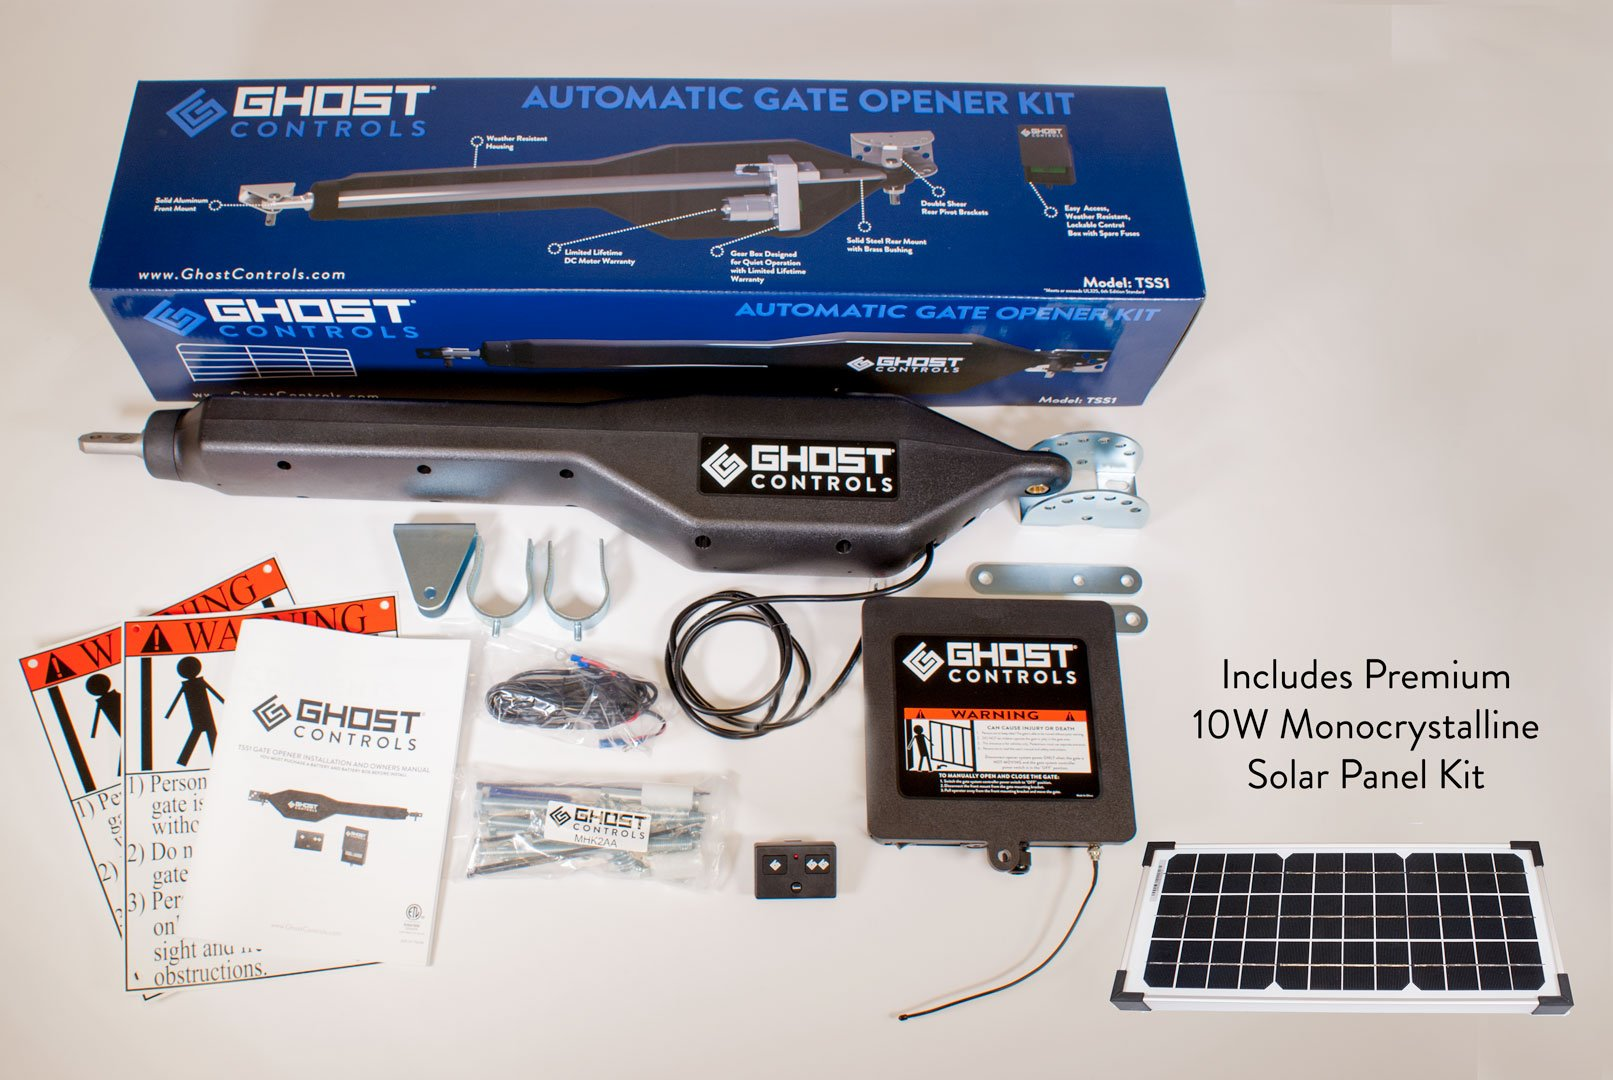 Ghost Controls TSS1XP Heavy-Duty Solar Single Automatic Gate Opener Kit for Swing Gates Up to 20 Feet (ft.) by GHOST CONTROLS